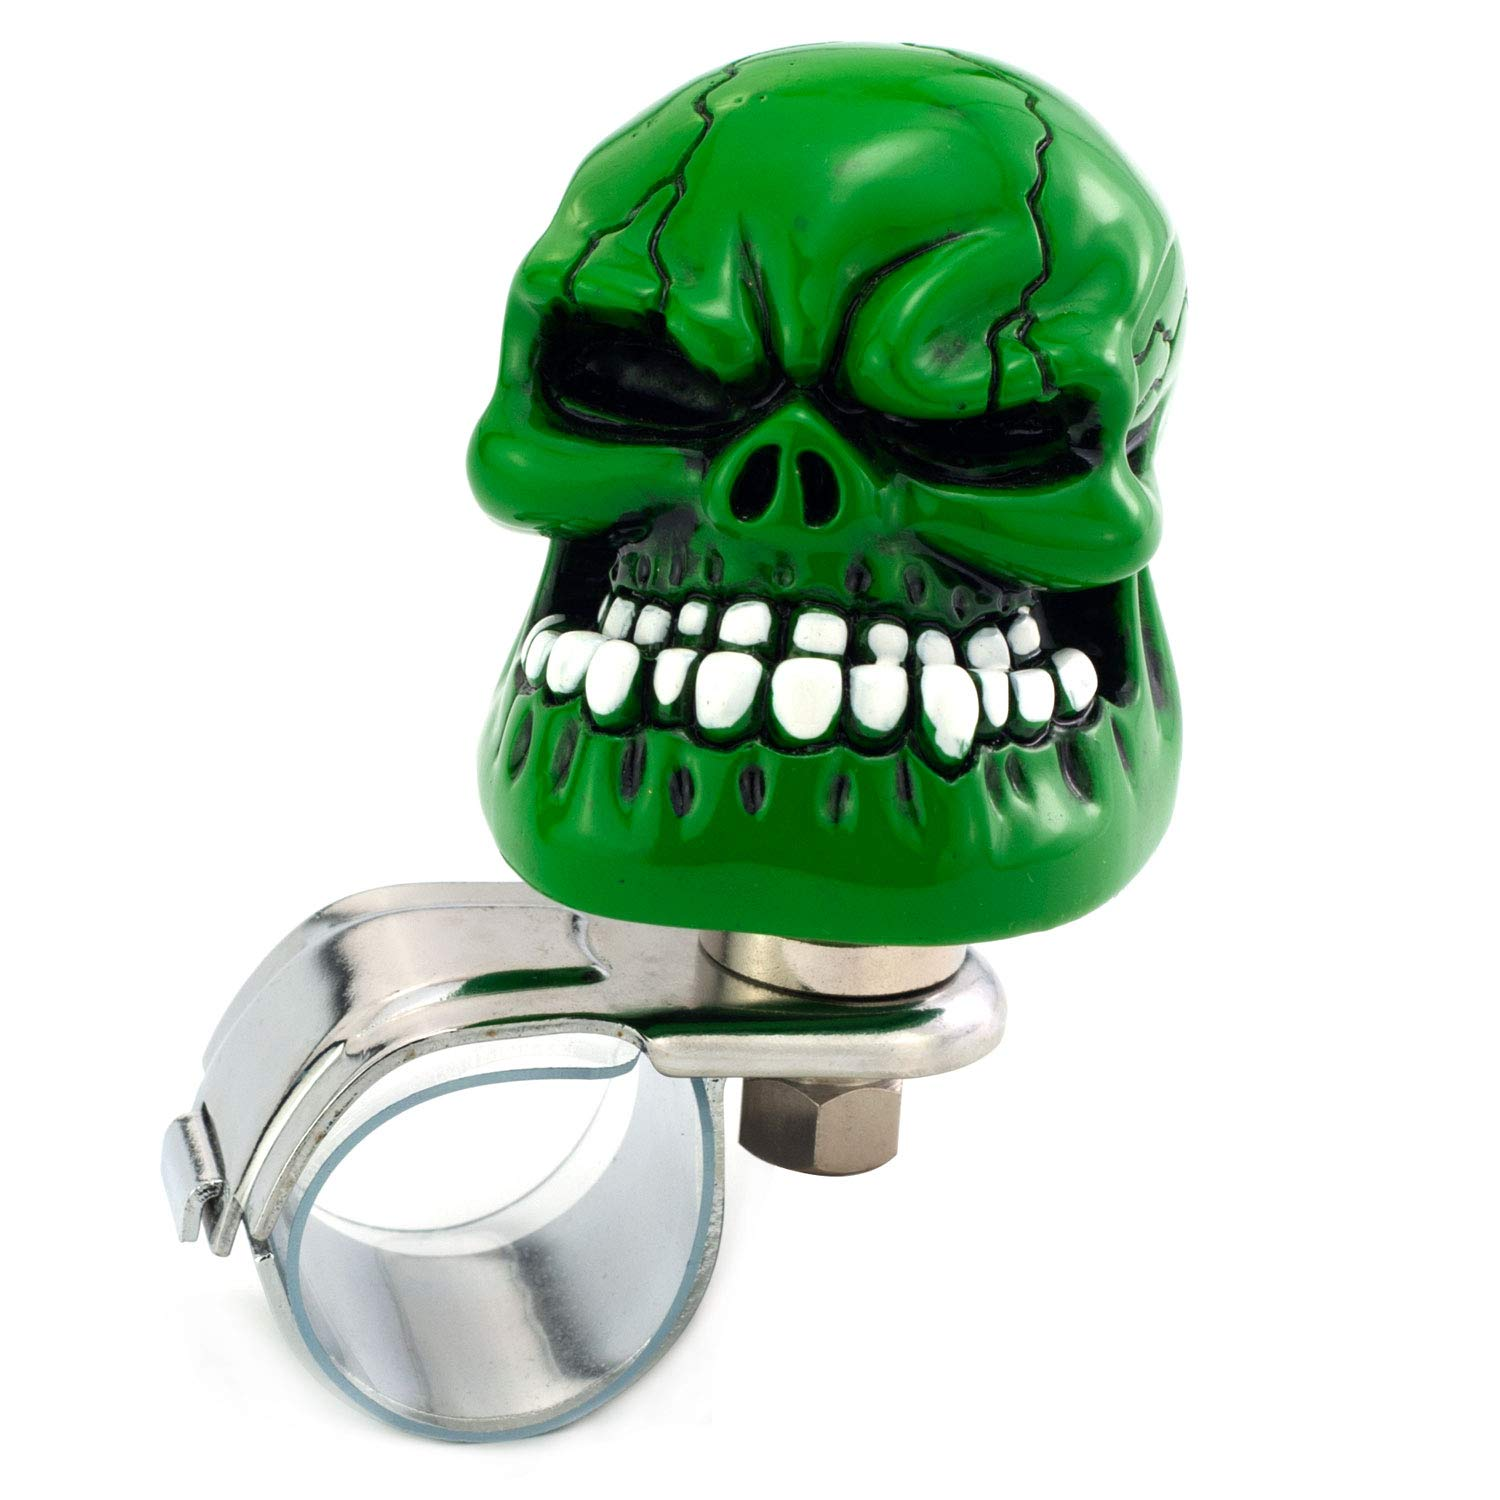 Big Teeth Devil Style Car Power Handle Grip Knobs Fit Most Manual Automatic Vehicles Thruifo Skull Car Steering Knob Suicide Wheel Spinner Blue